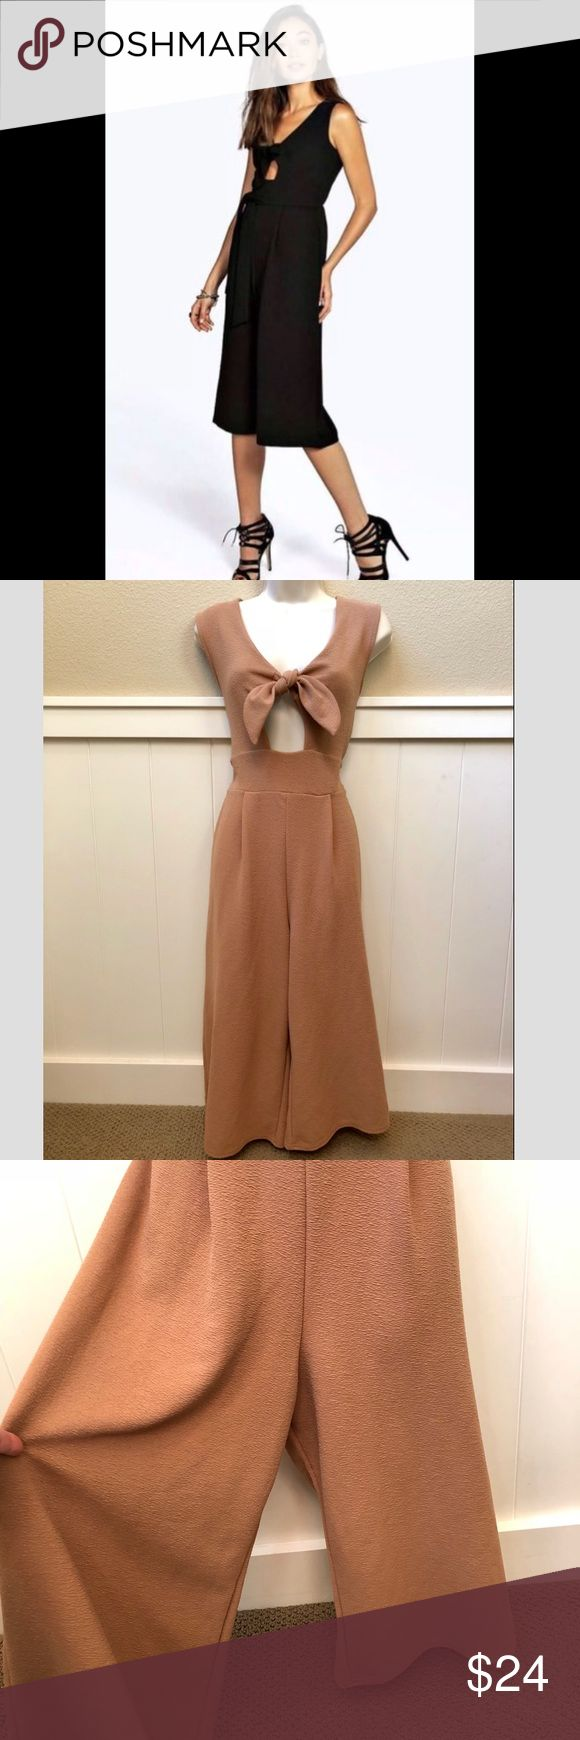 NWT Boohoo wide leg crop jumpsuit in camel color! NWT Boohoo wide leg crop jumpsuit in camel color! Comfortable and stylish with a tie back for the perfect fit. Sz 8 Boohoo Other